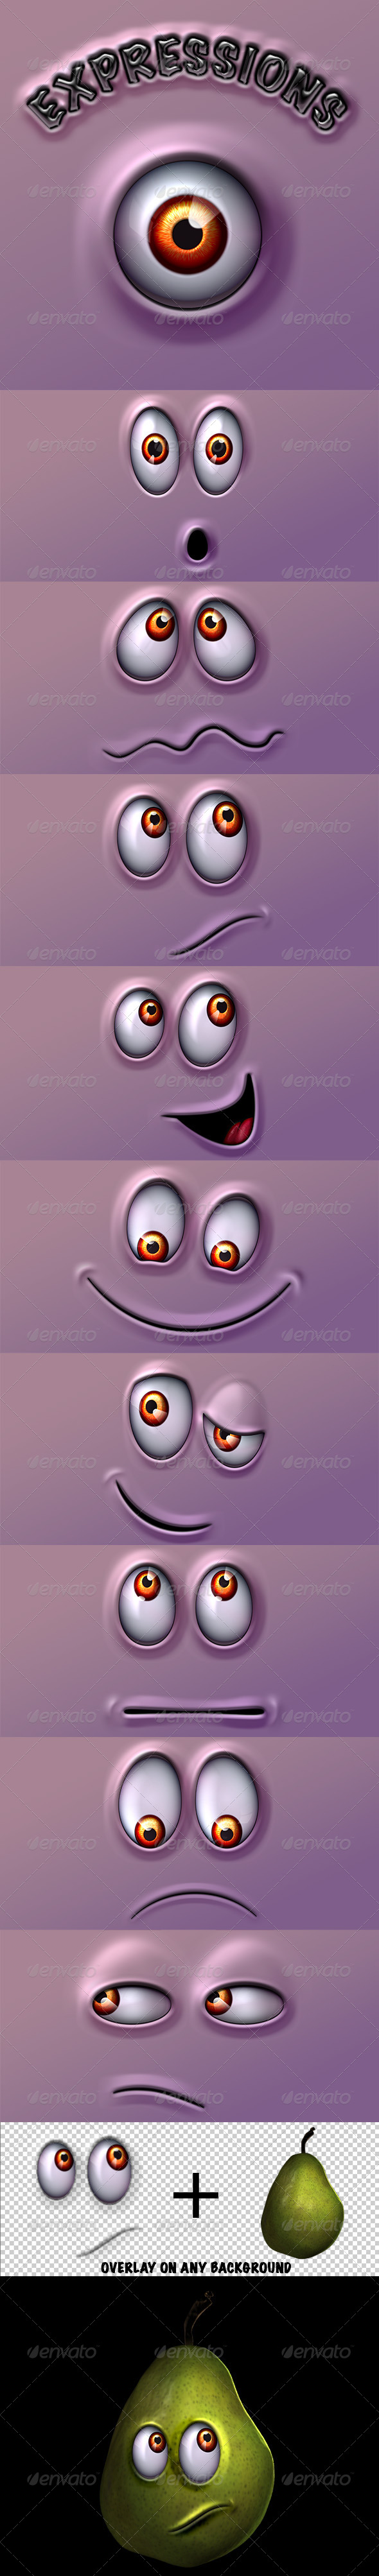 GraphicRiver Character Expressions Pack 4570791